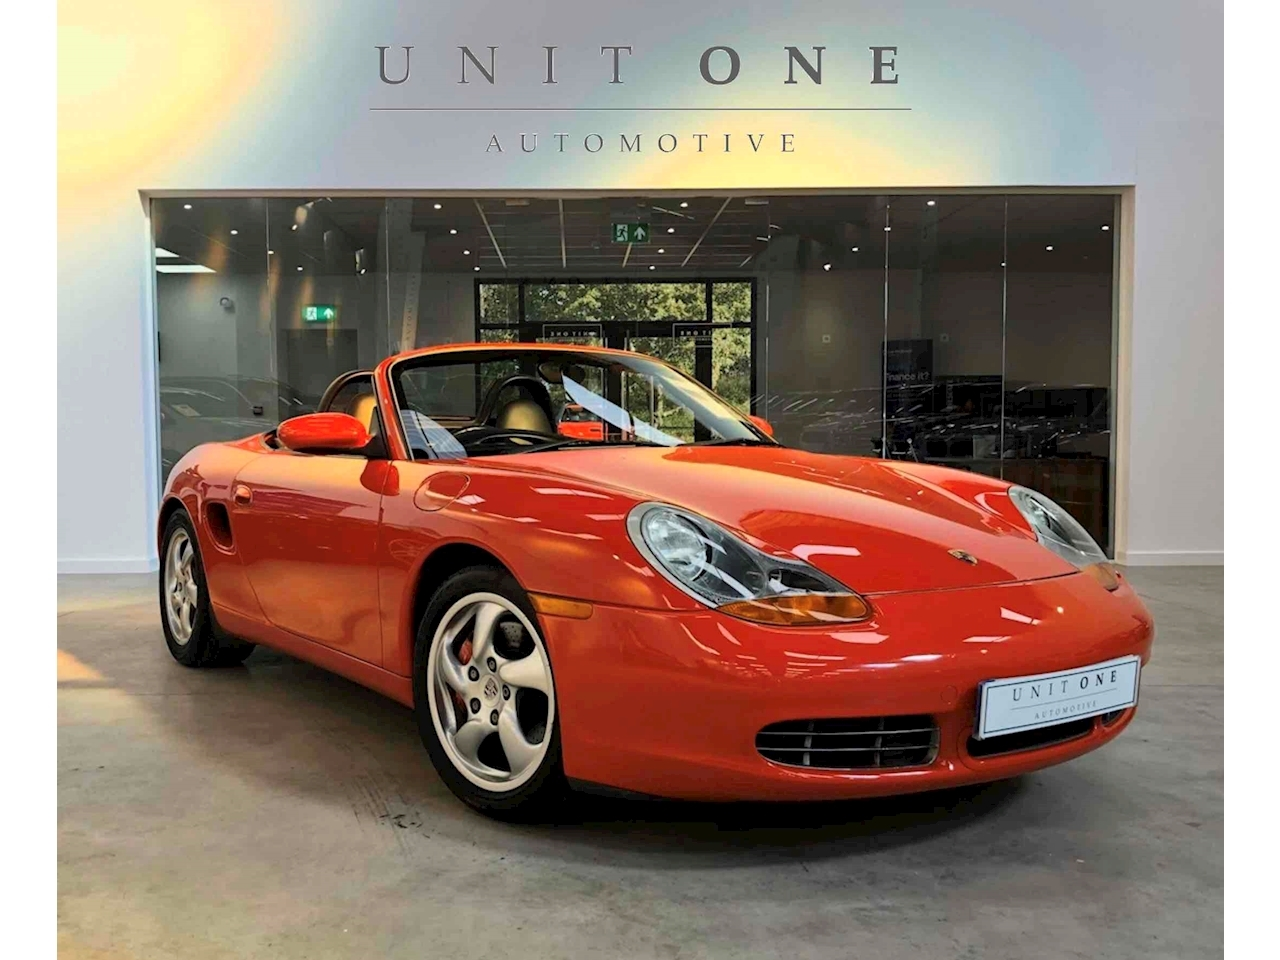 Boxster S Convertible 3.2 Manual Petrol